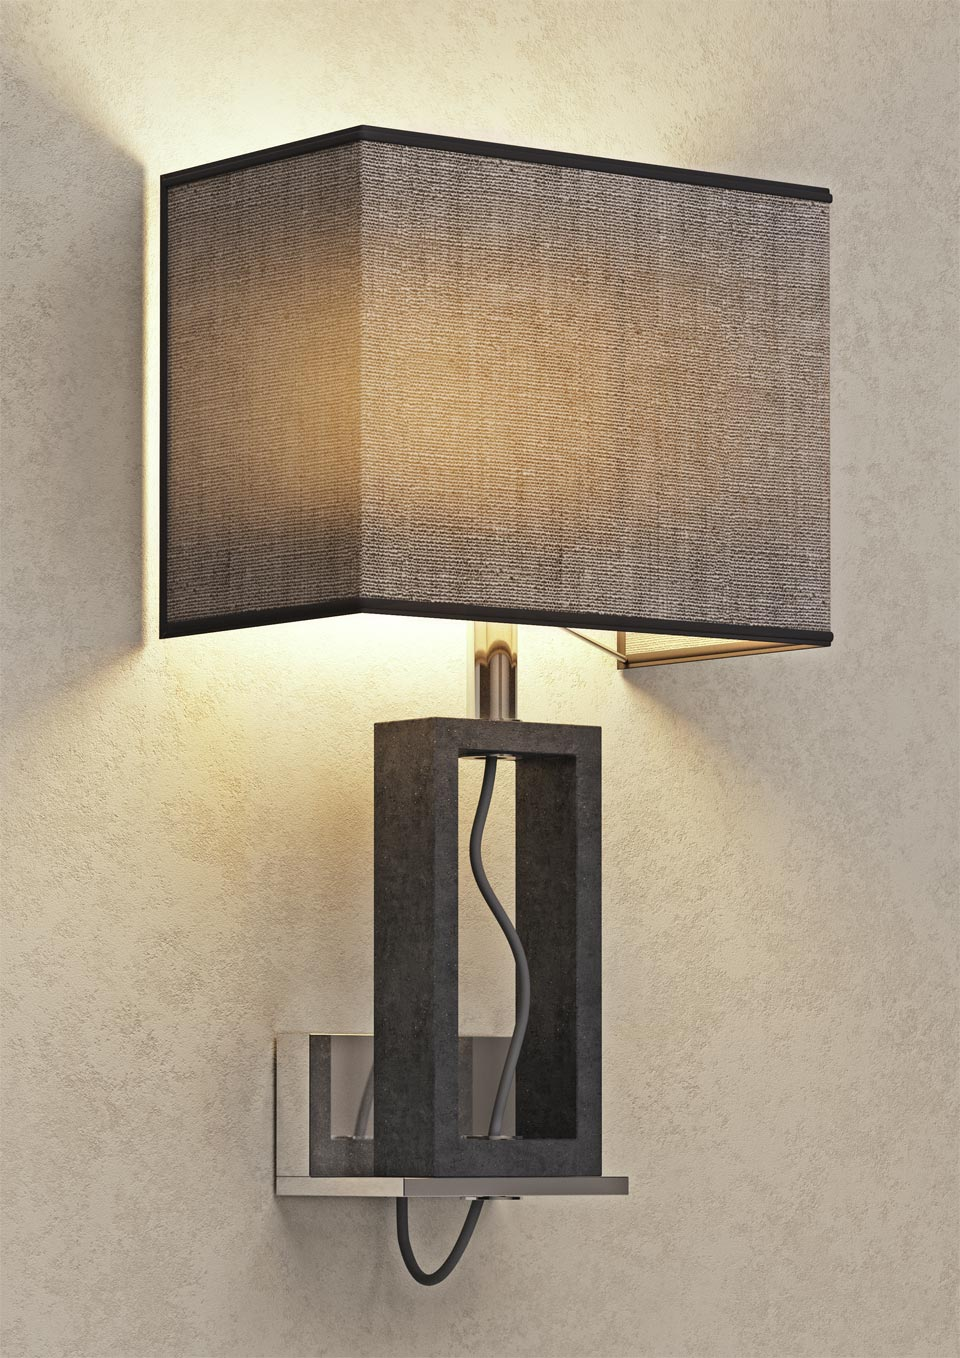 Applique en marbre Contemporary. Matlight.